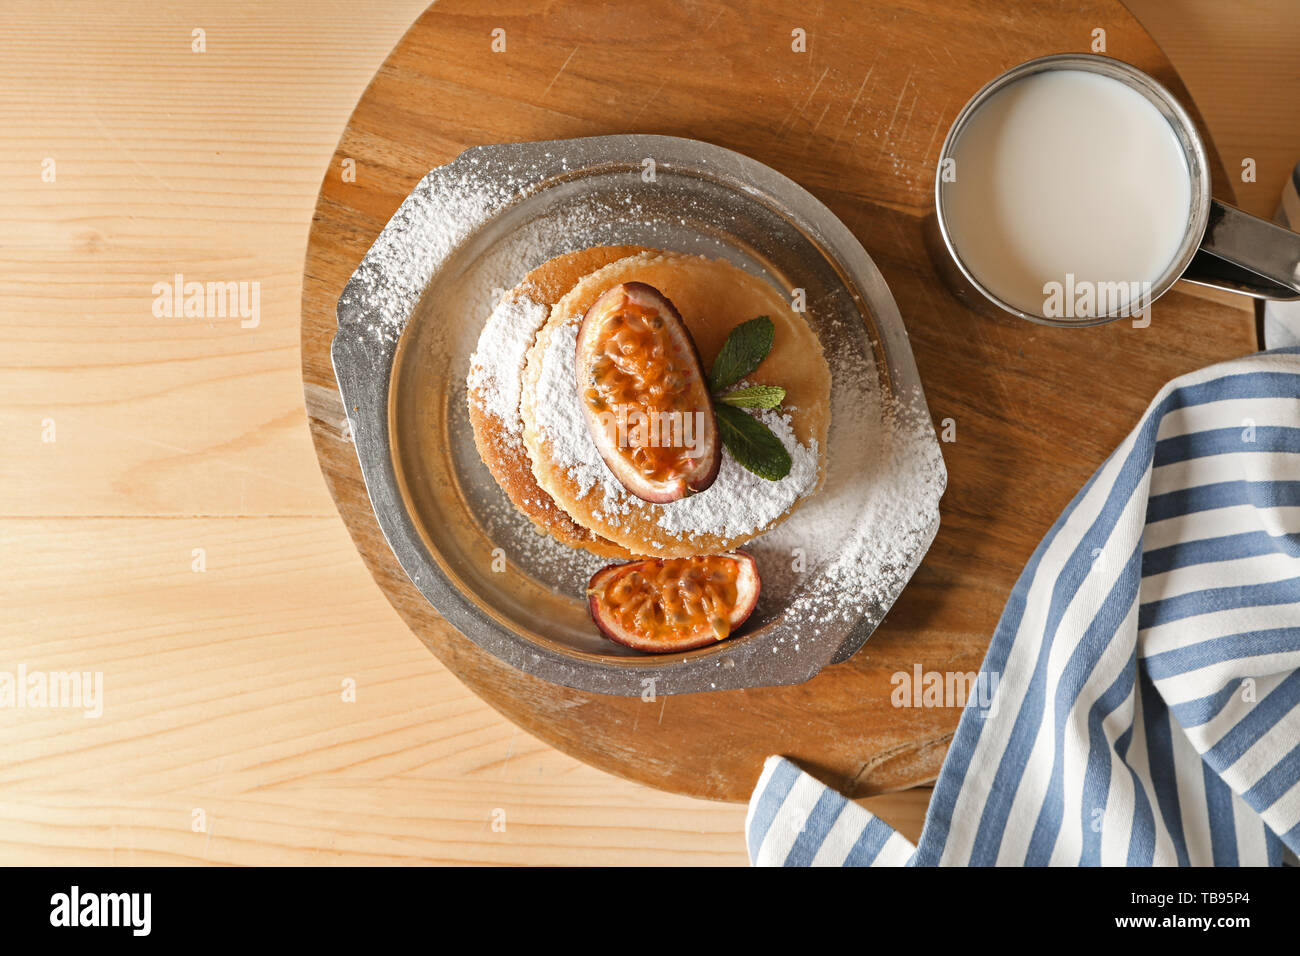 Tasty Pancakes With Passion Fruit And Mug Of Milk On Table Stock Photo Alamy